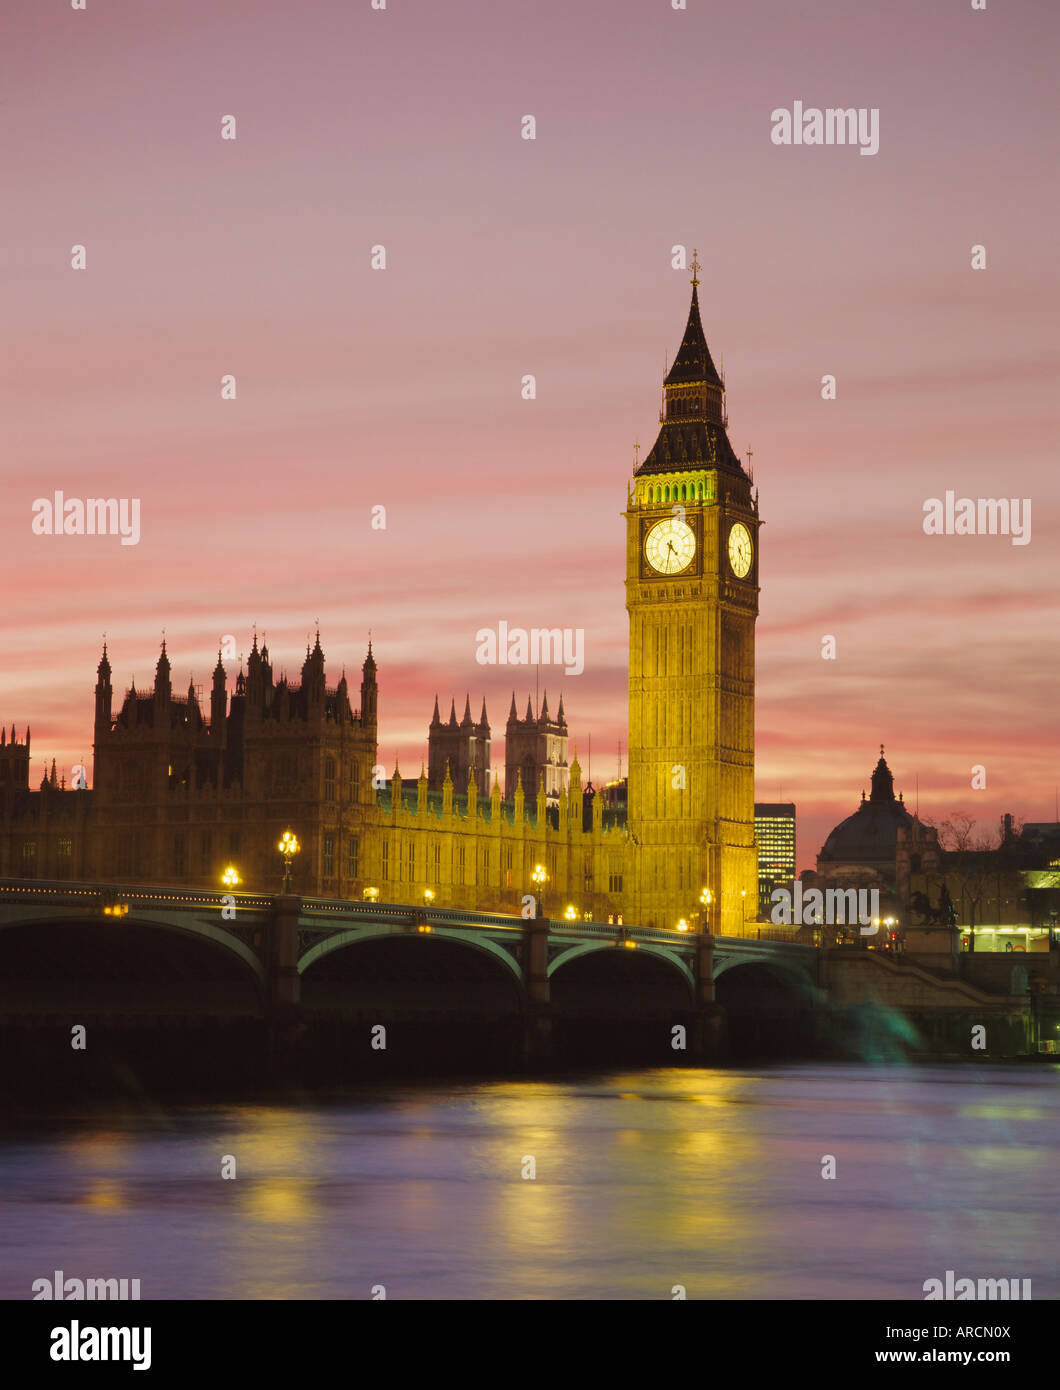 The River Thames, Westminster Bridge, Big Ben and the Houses of Parliament in the evening, London, England, UK Stock Photo